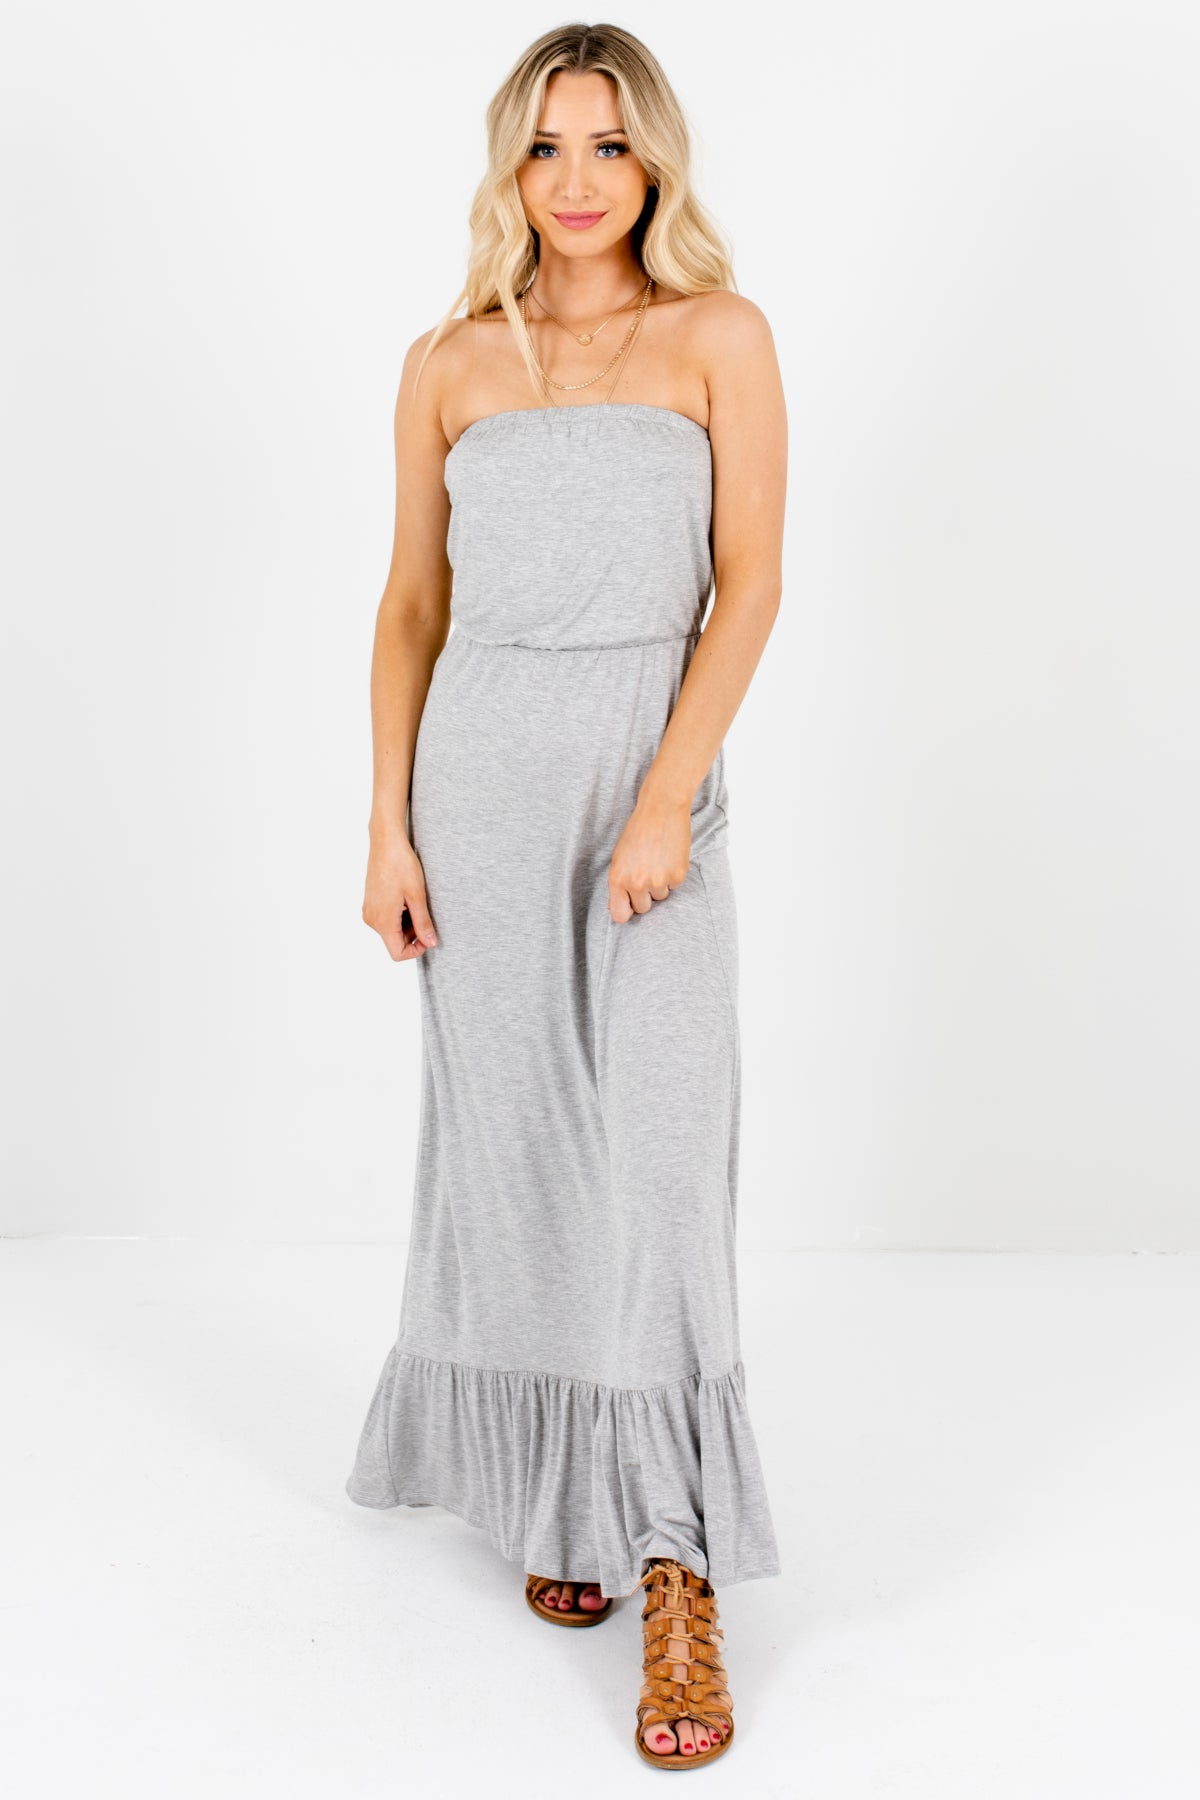 Heather Gray Strapless Style Boutique Maxi Dresses for Women